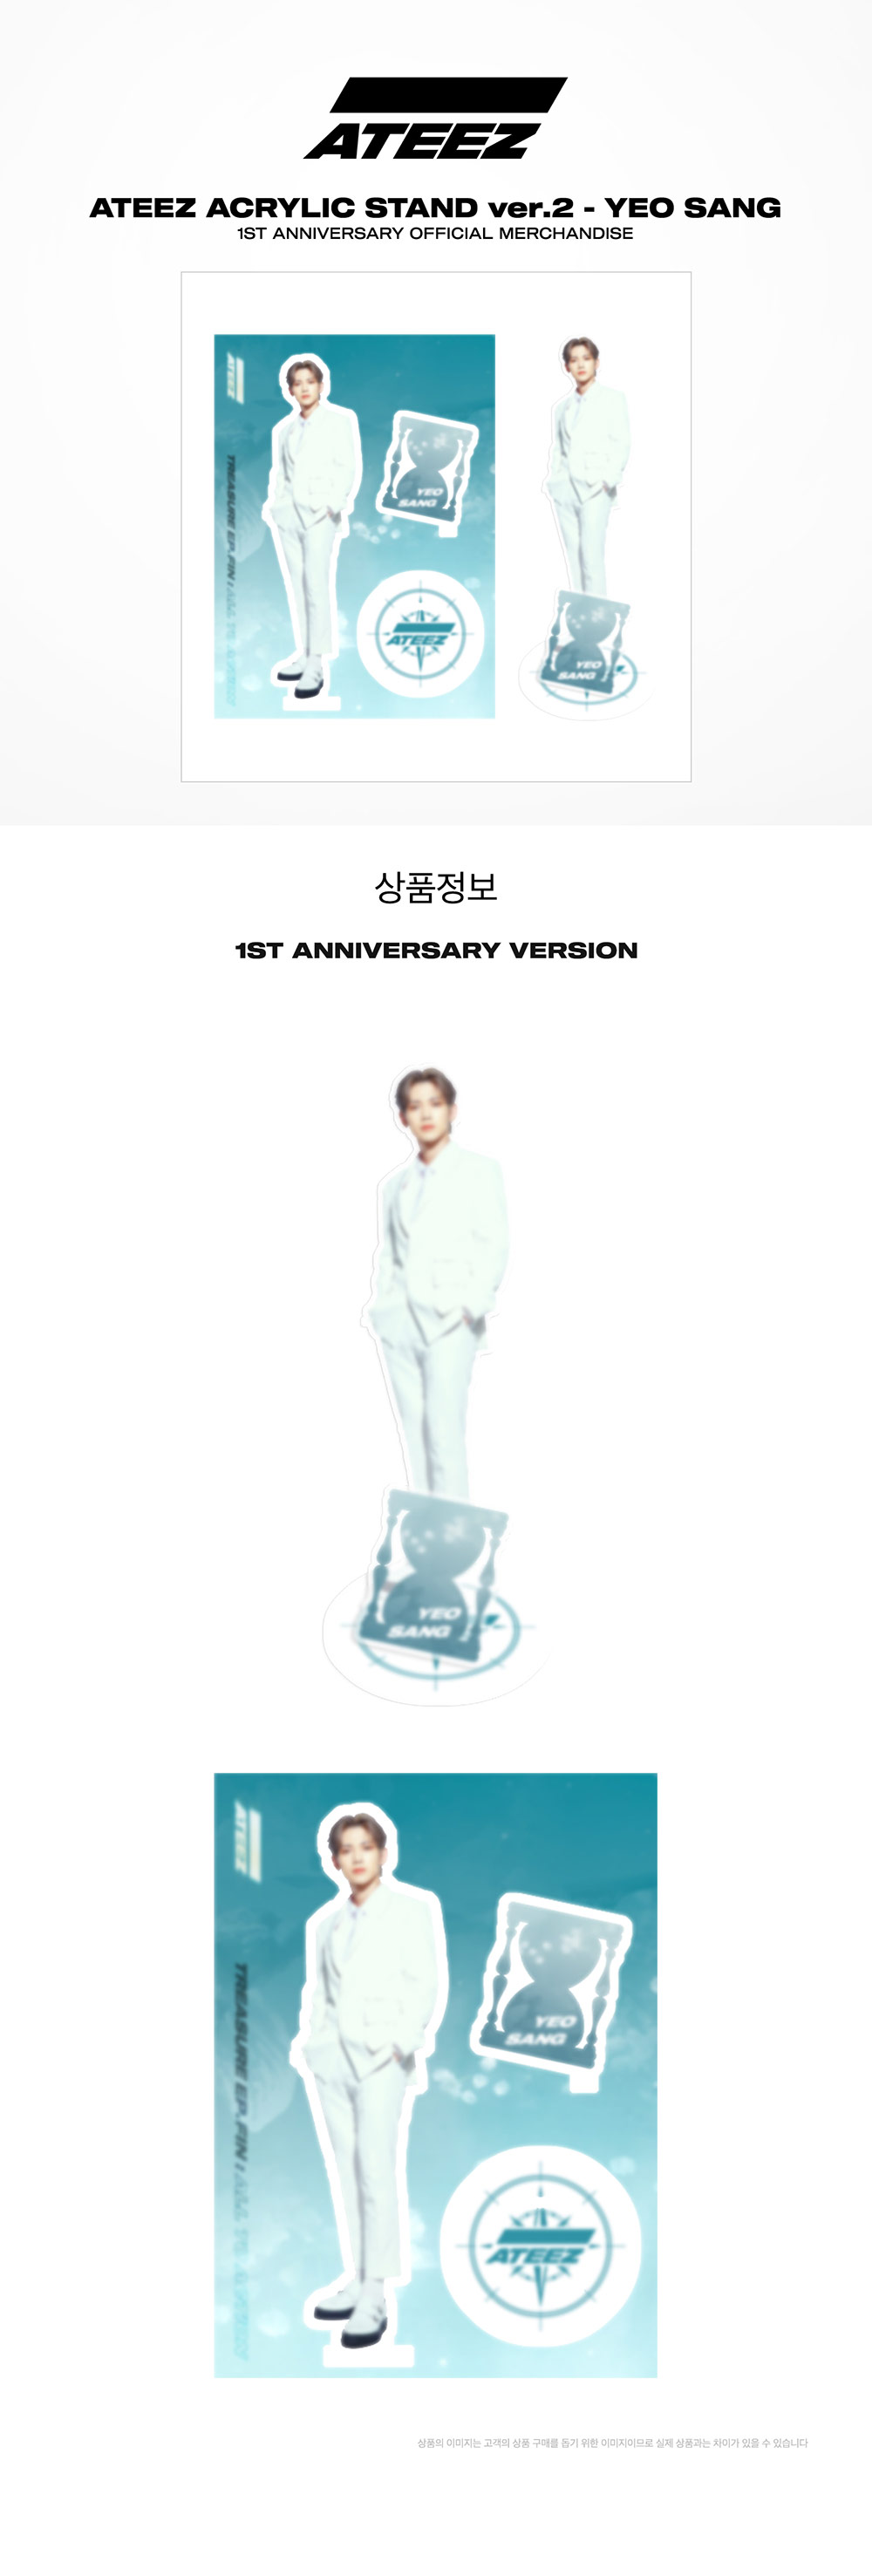 ateez_1st_anniversary_ACRYLIC_STAND2-4